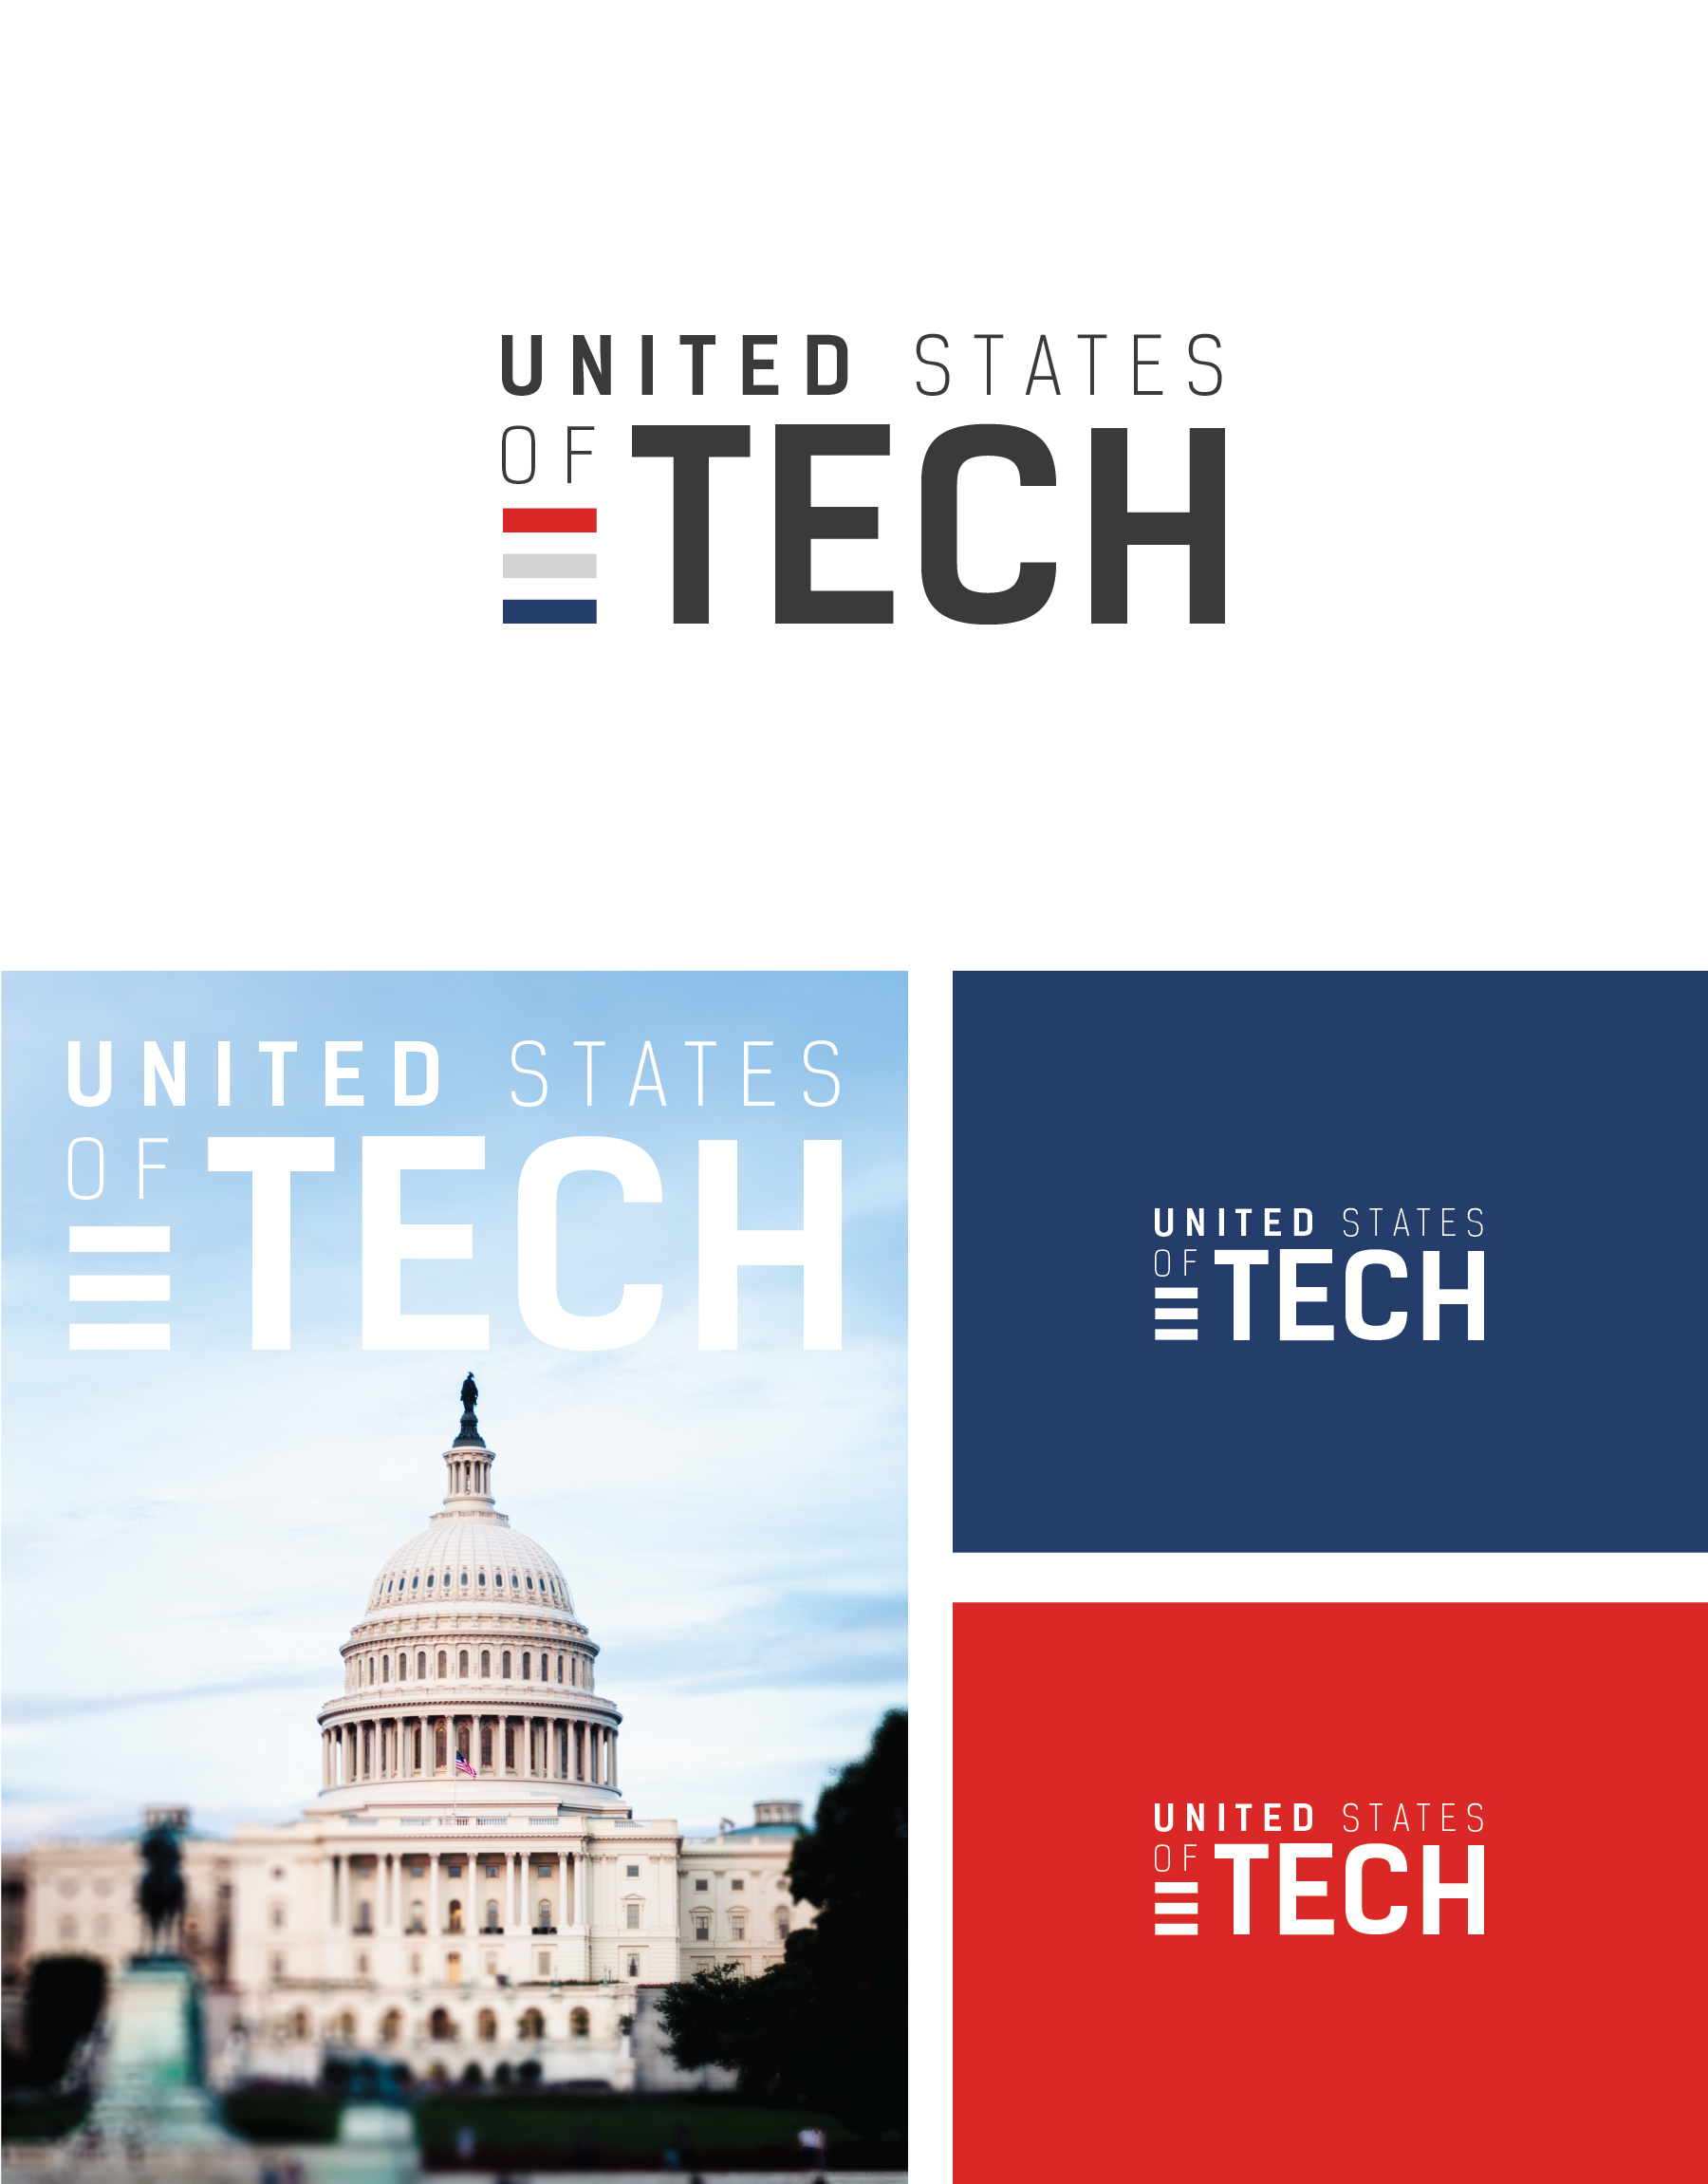 United States of Tech Identity